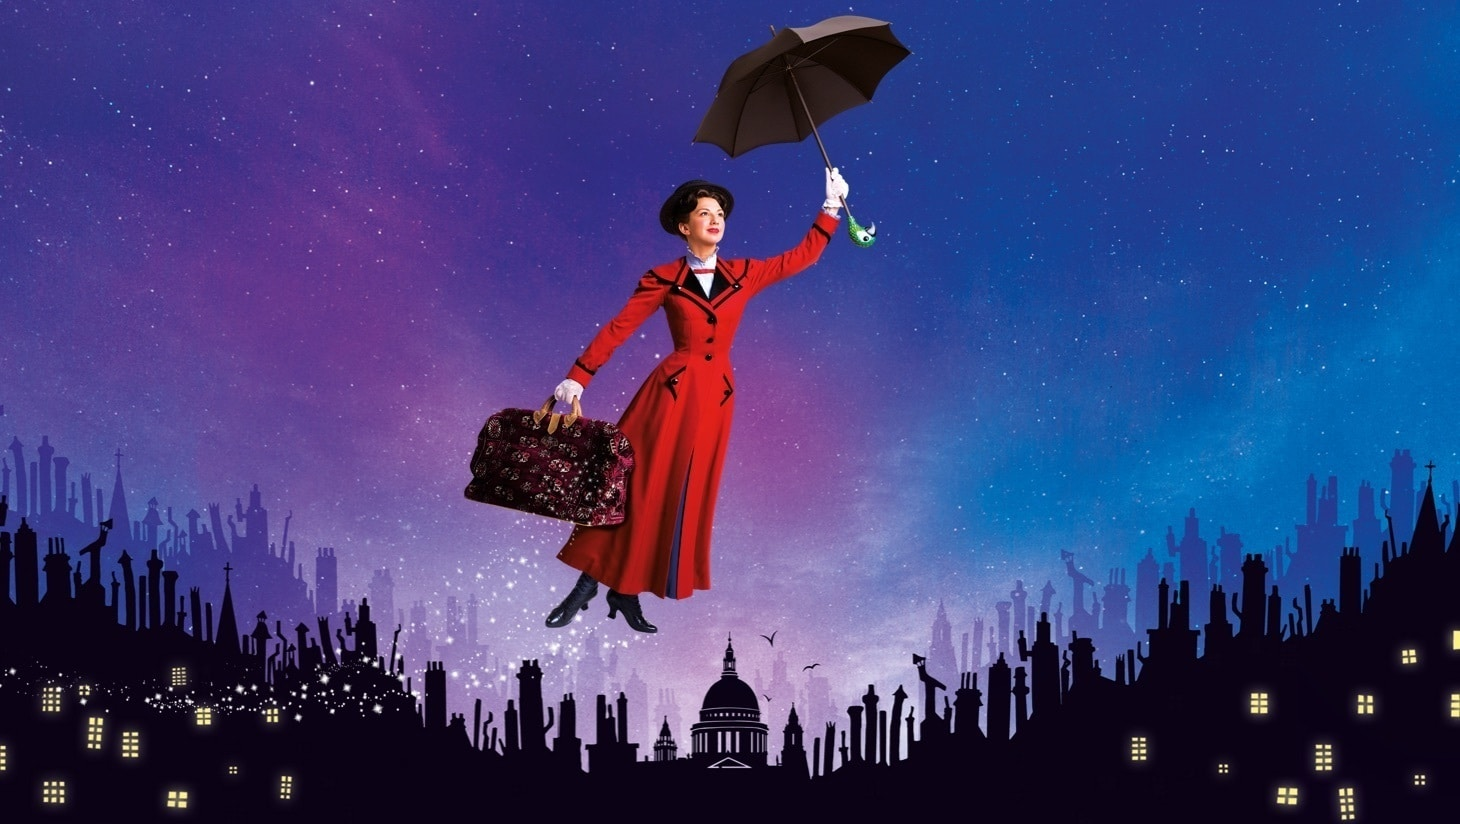 Mary Poppins flying with her umbrella with a silhouette of the town in the background and a colourful galaxy sky